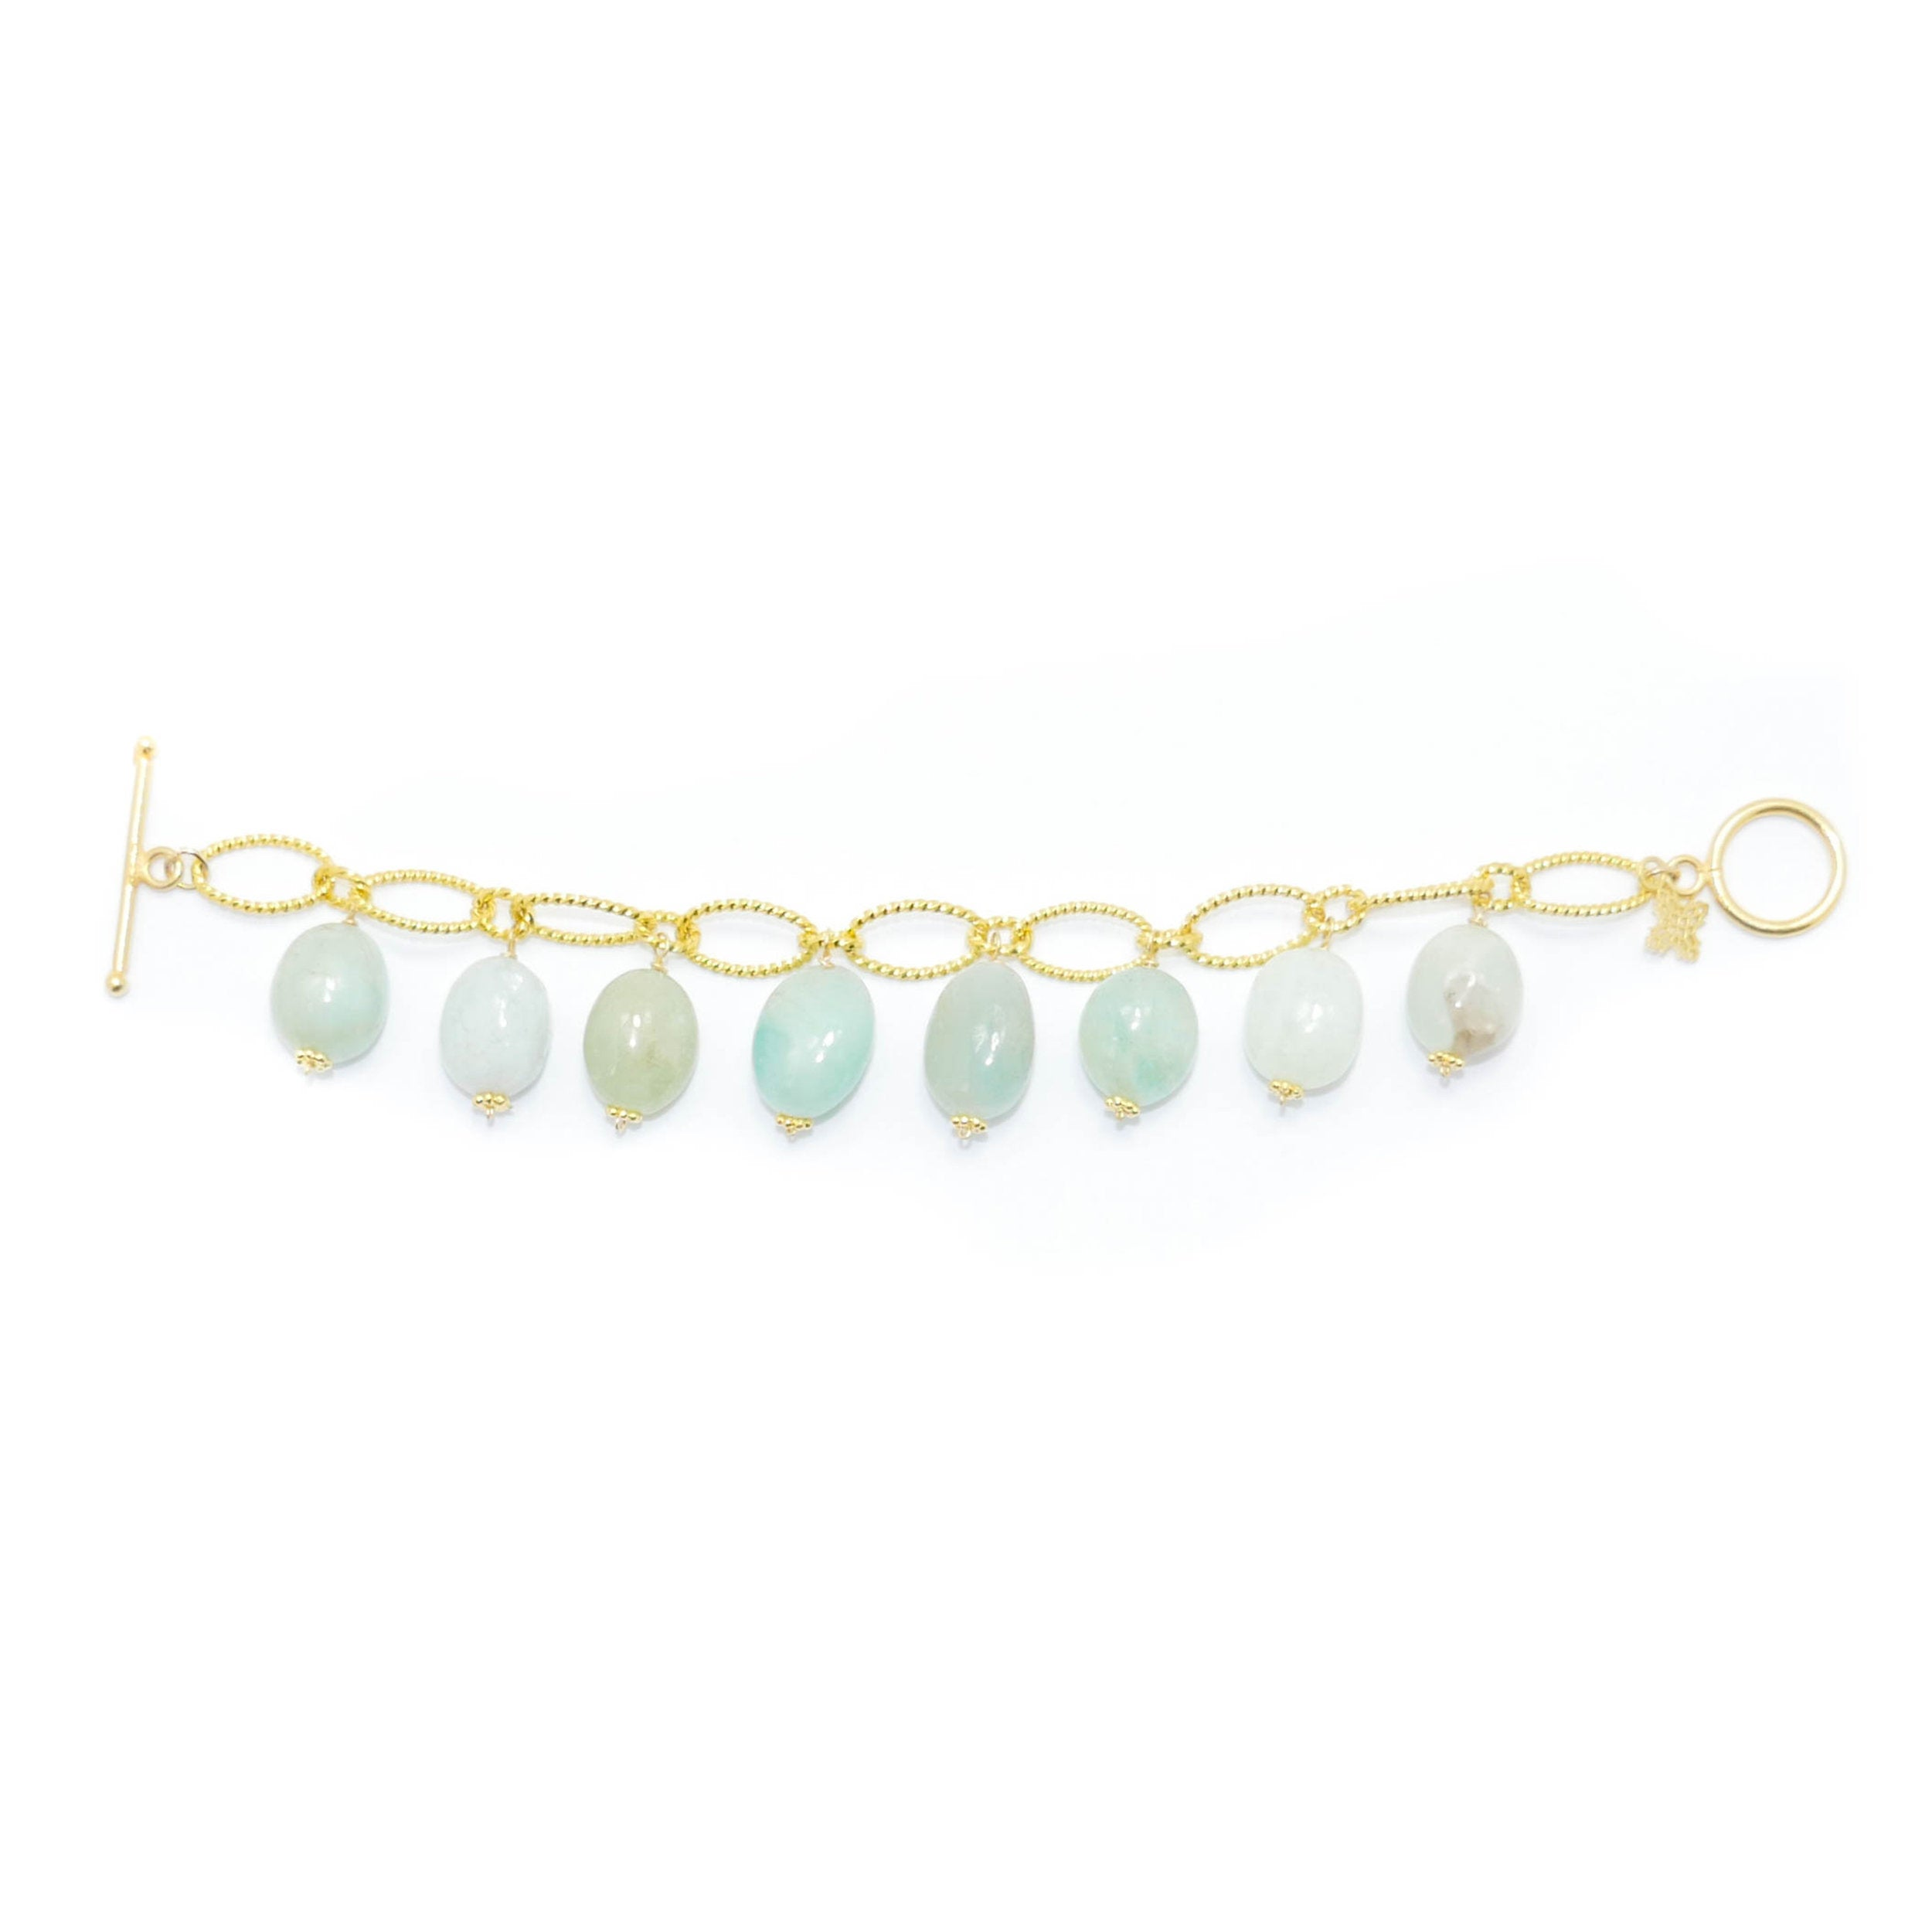 zoom calmness for courage listing or peacefulness of serenity anklet bead self wish fullxfull chip bracelet au and energy in aquamarine cleansing il expression